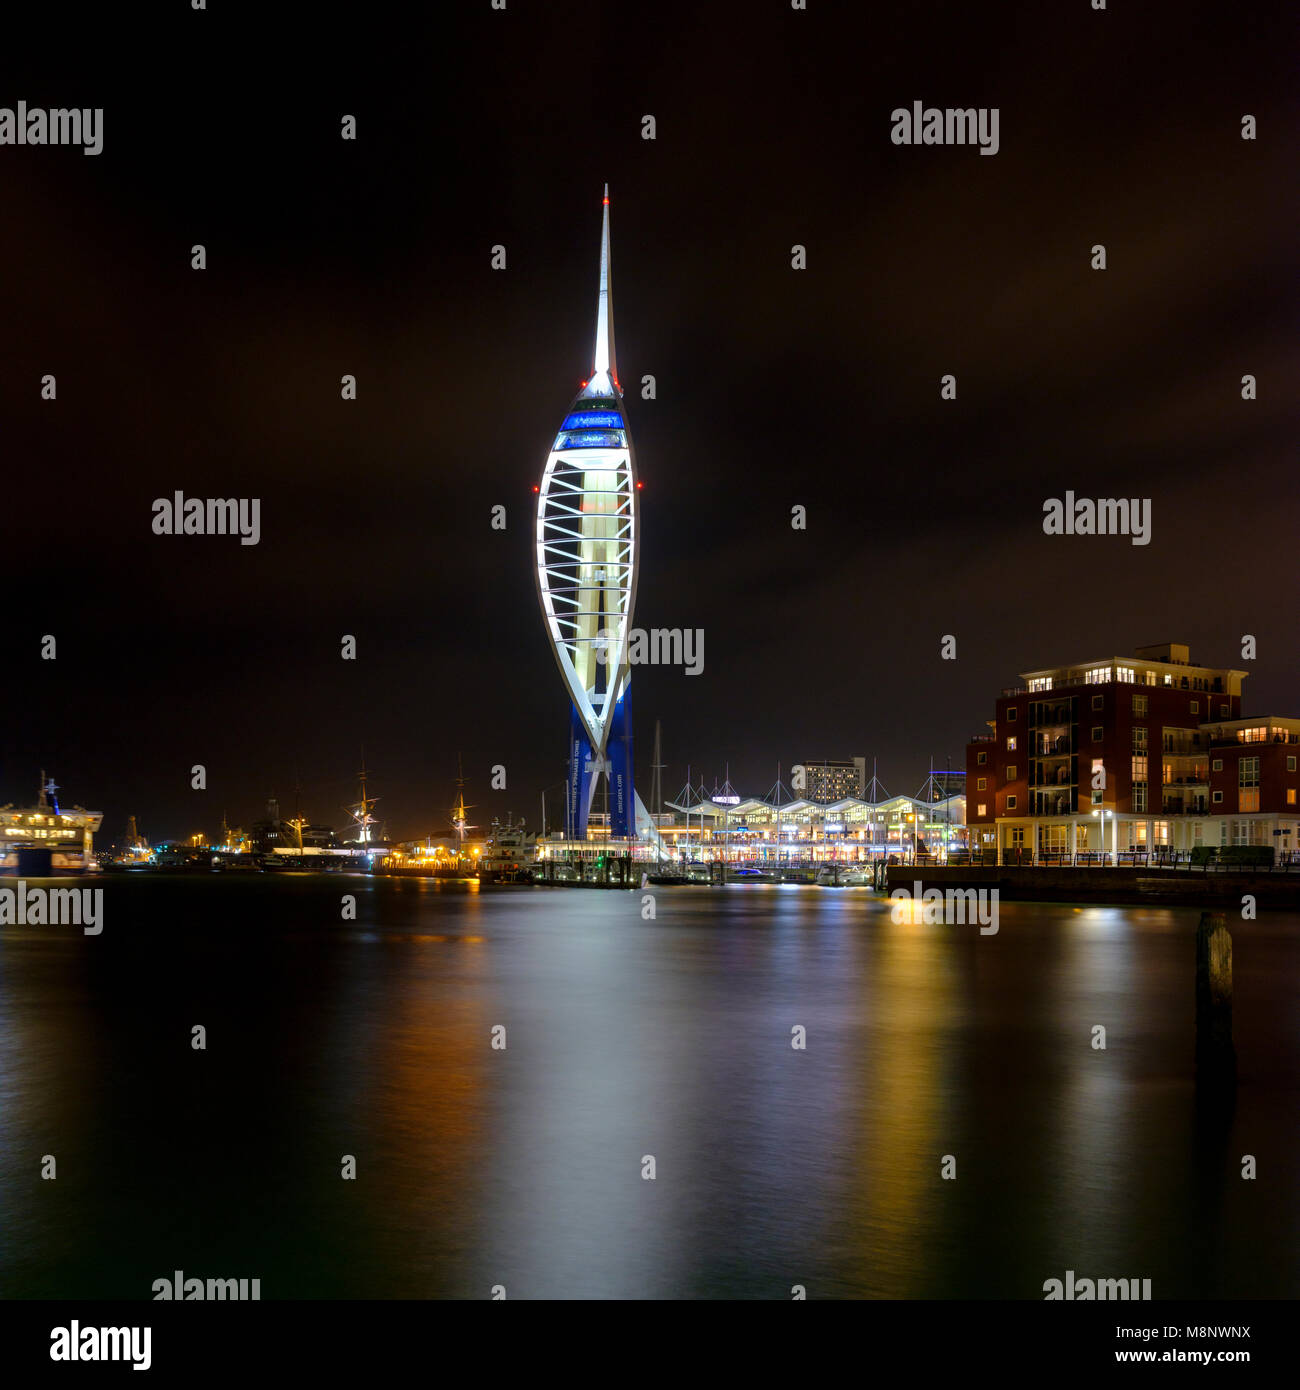 View of Spinnaker Tower by night from Old Portsmouth near the Still and West, Gunwharf, Portsmouth UK Stock Photo